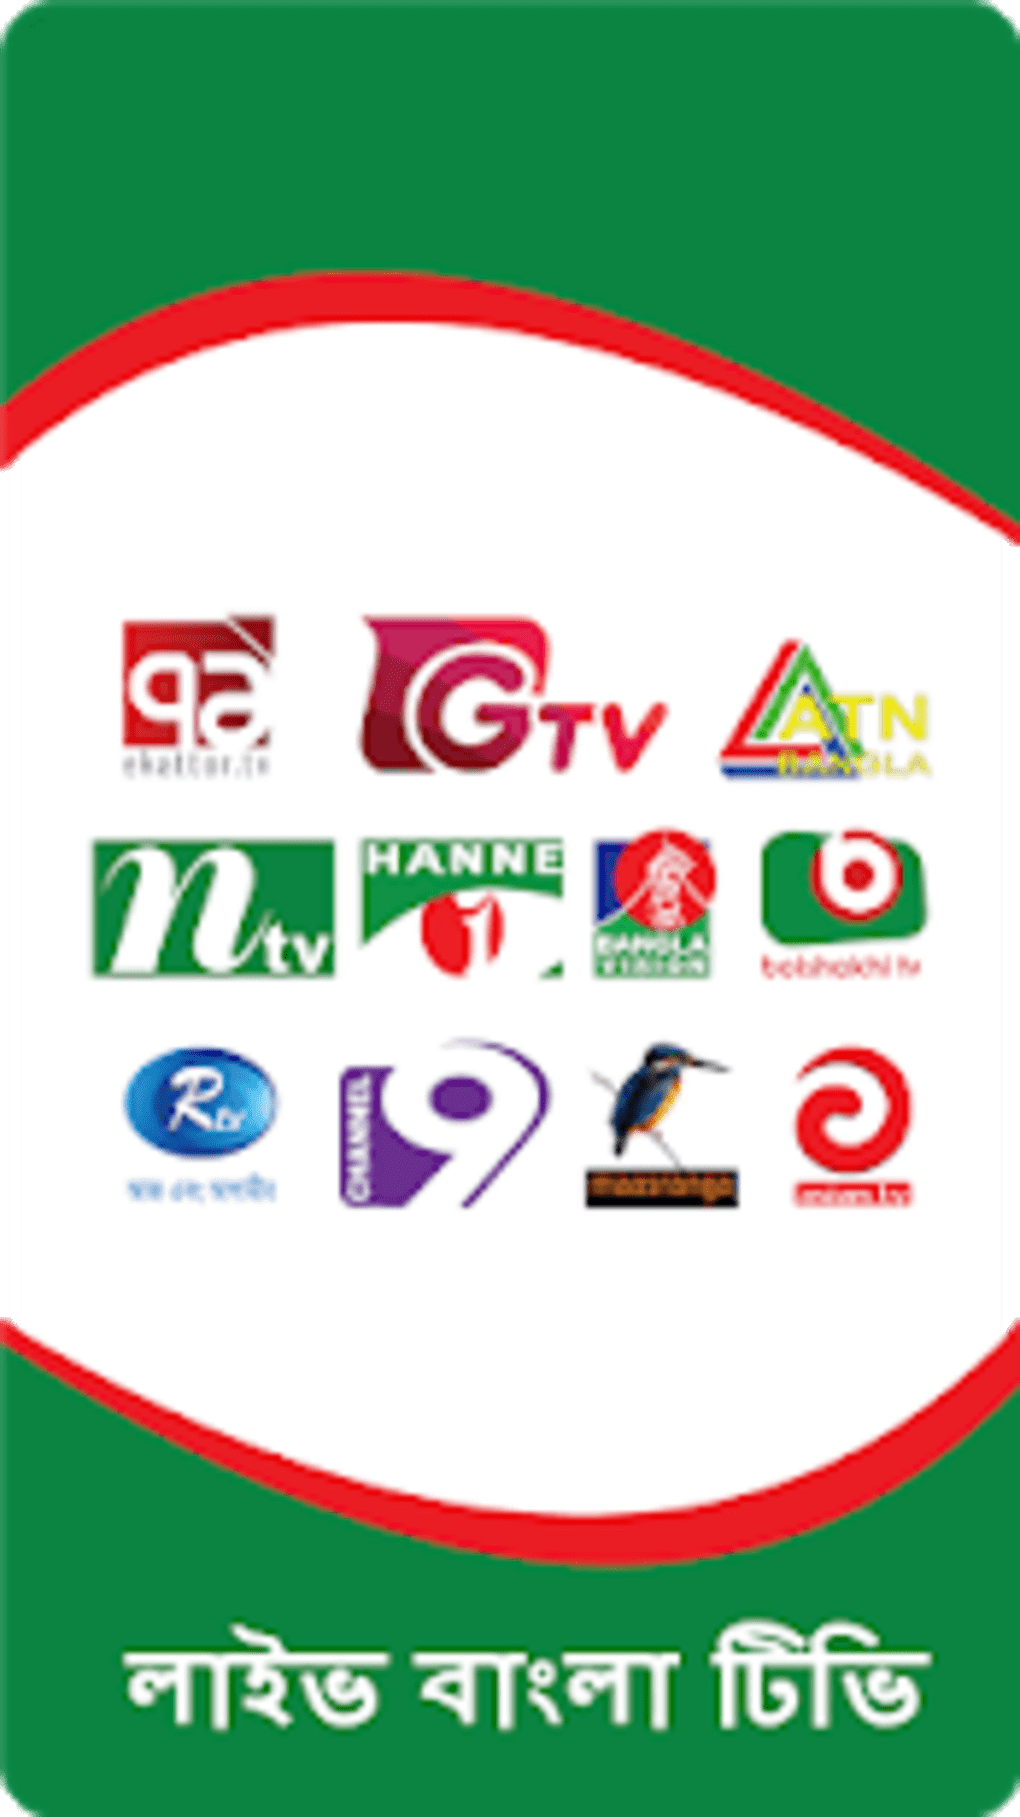 Live TV Channel - Bangla TV for Android - Download